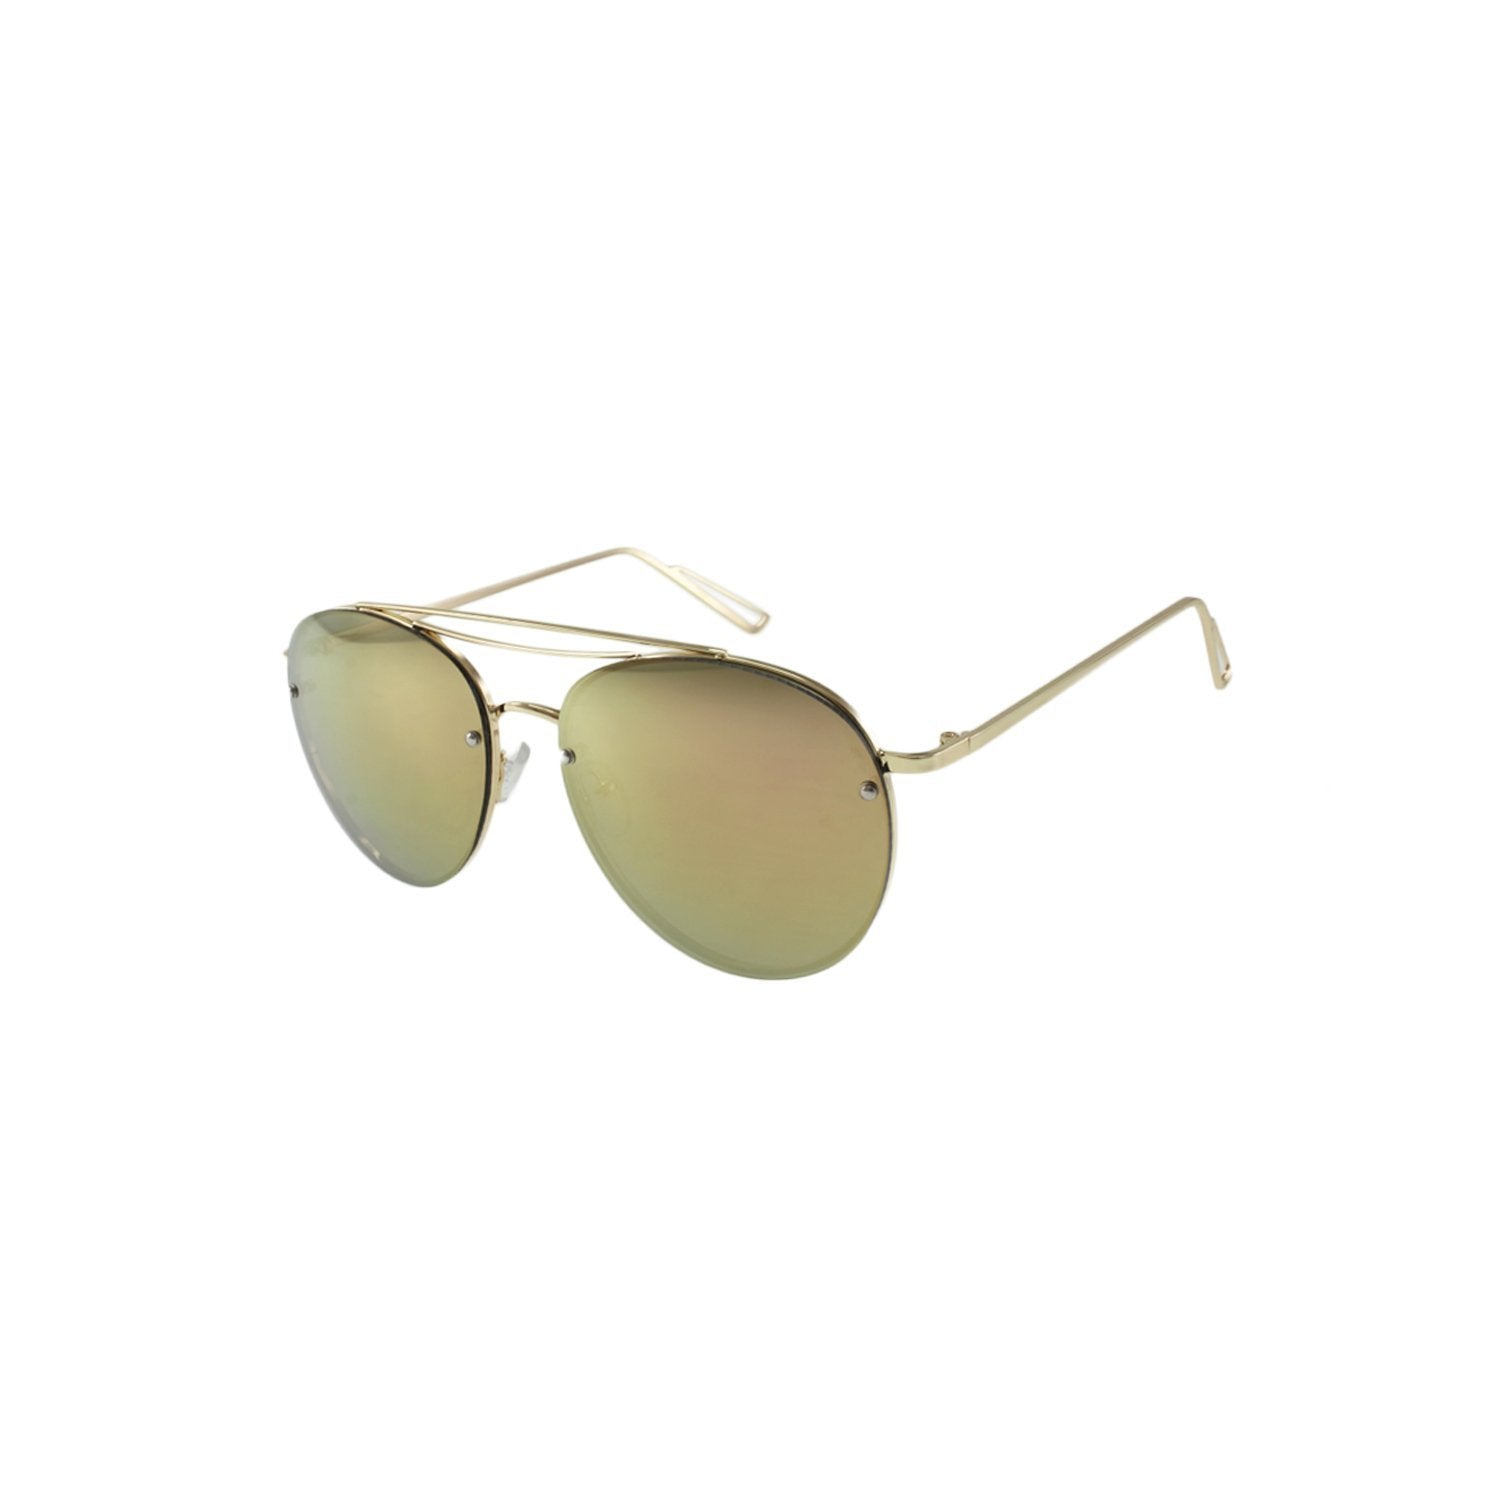 Jase New York Biscayne Sunglasses in Pink Mirror